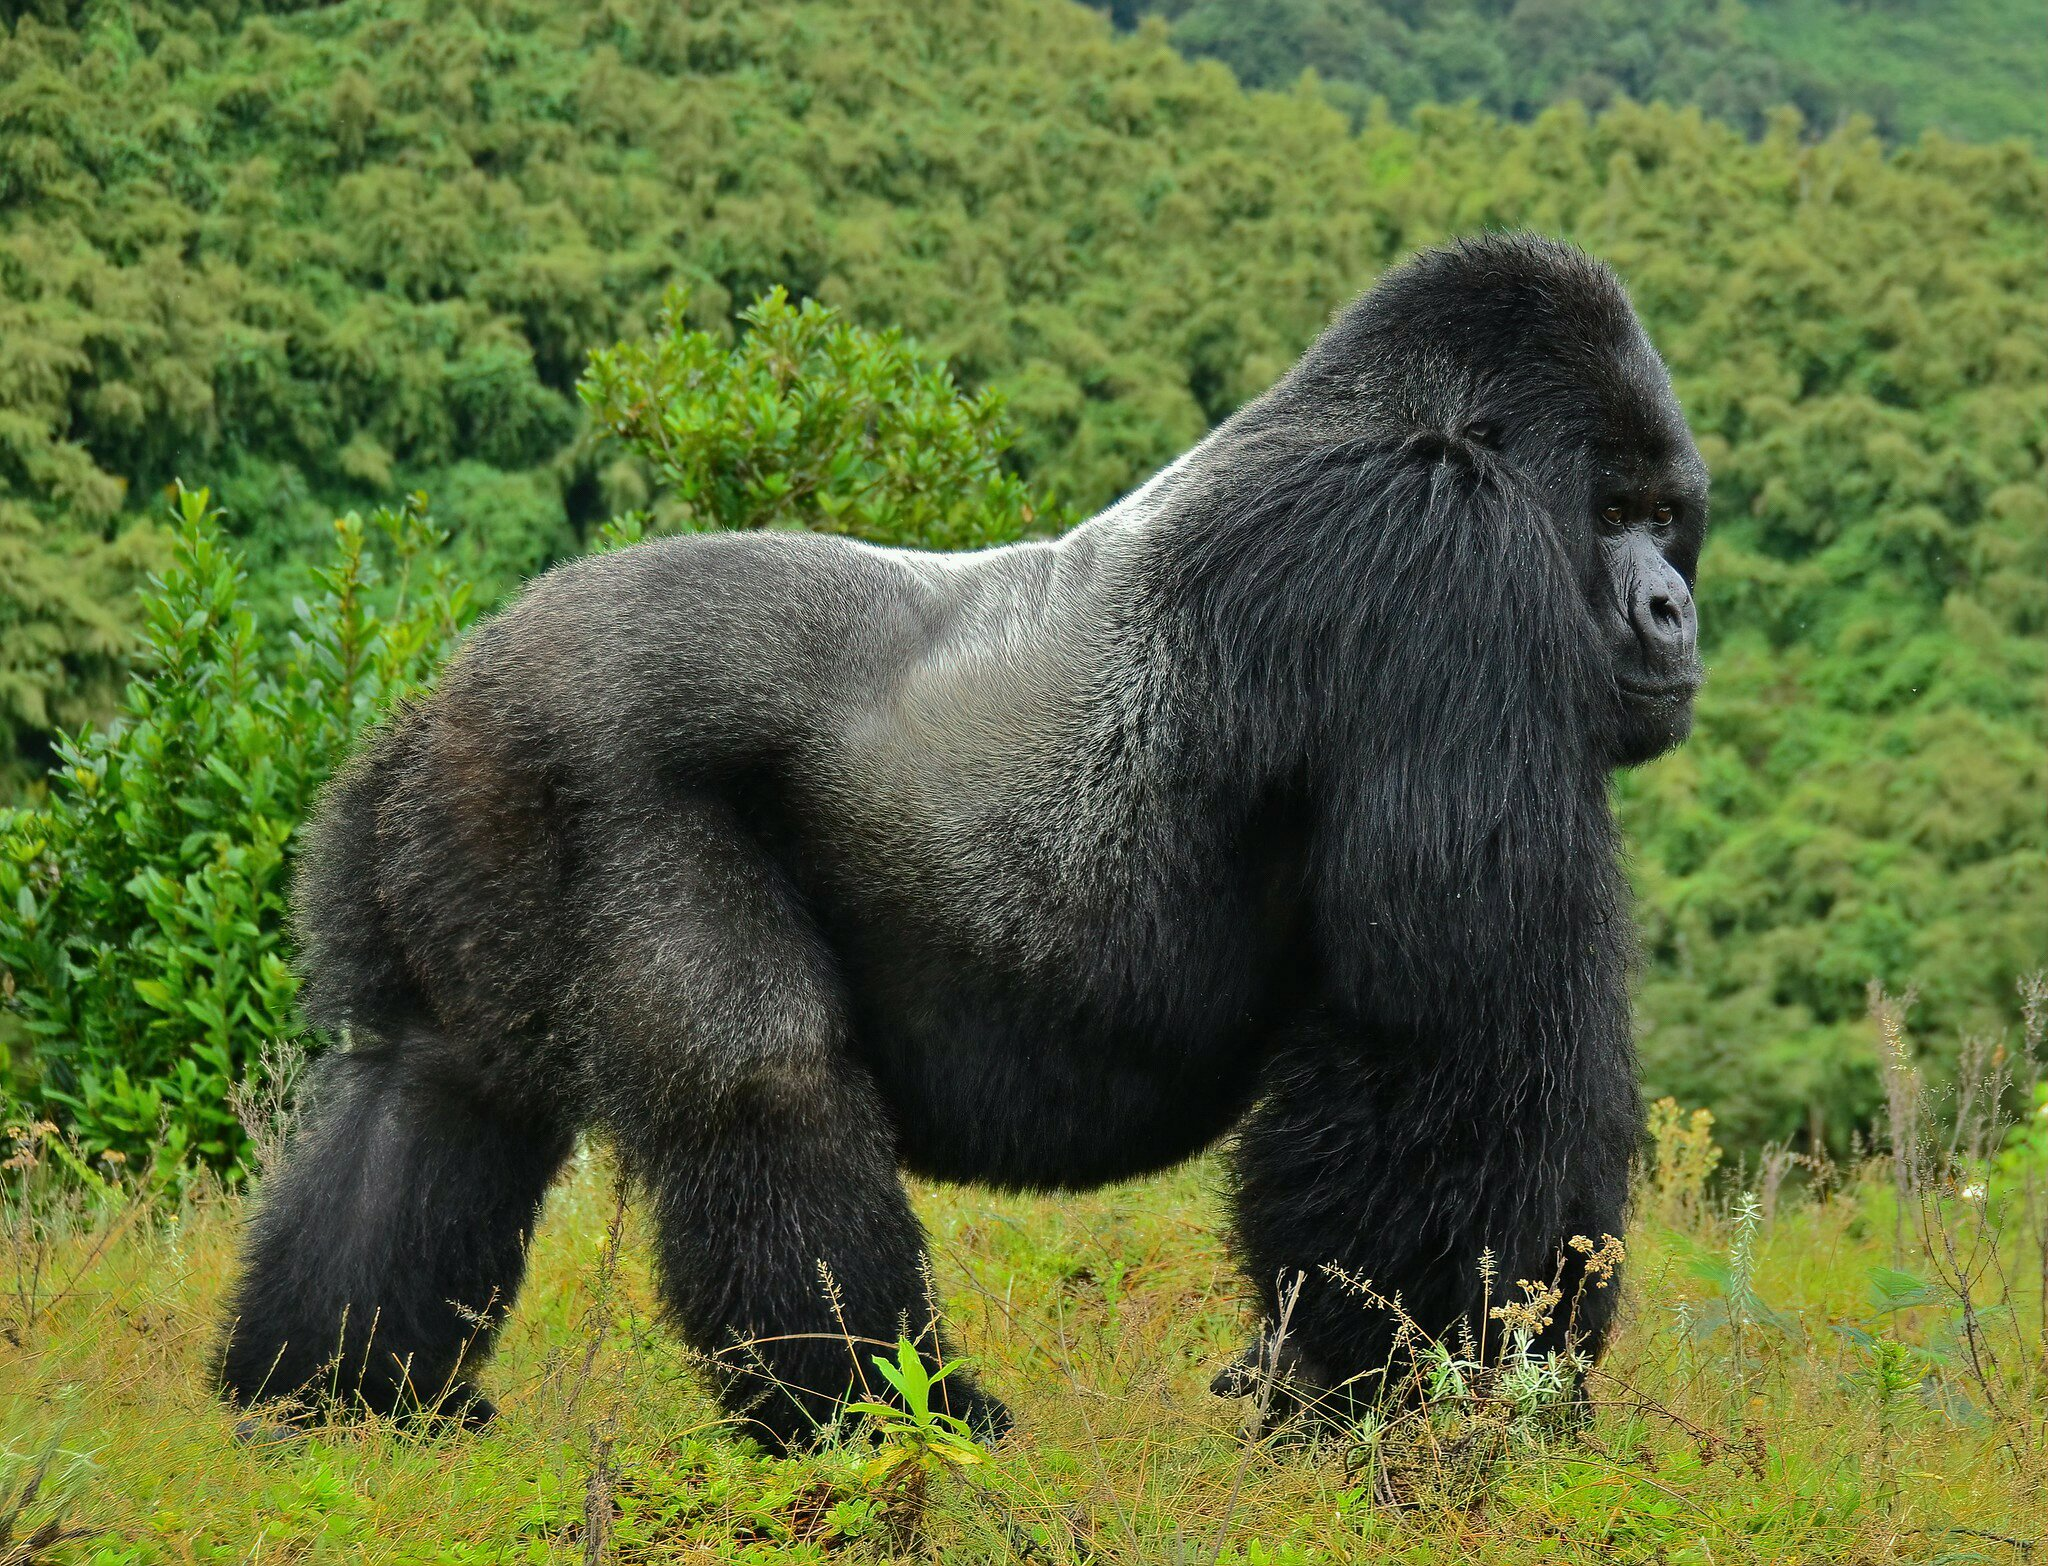 My Gorilla Trekking Virtual Tour